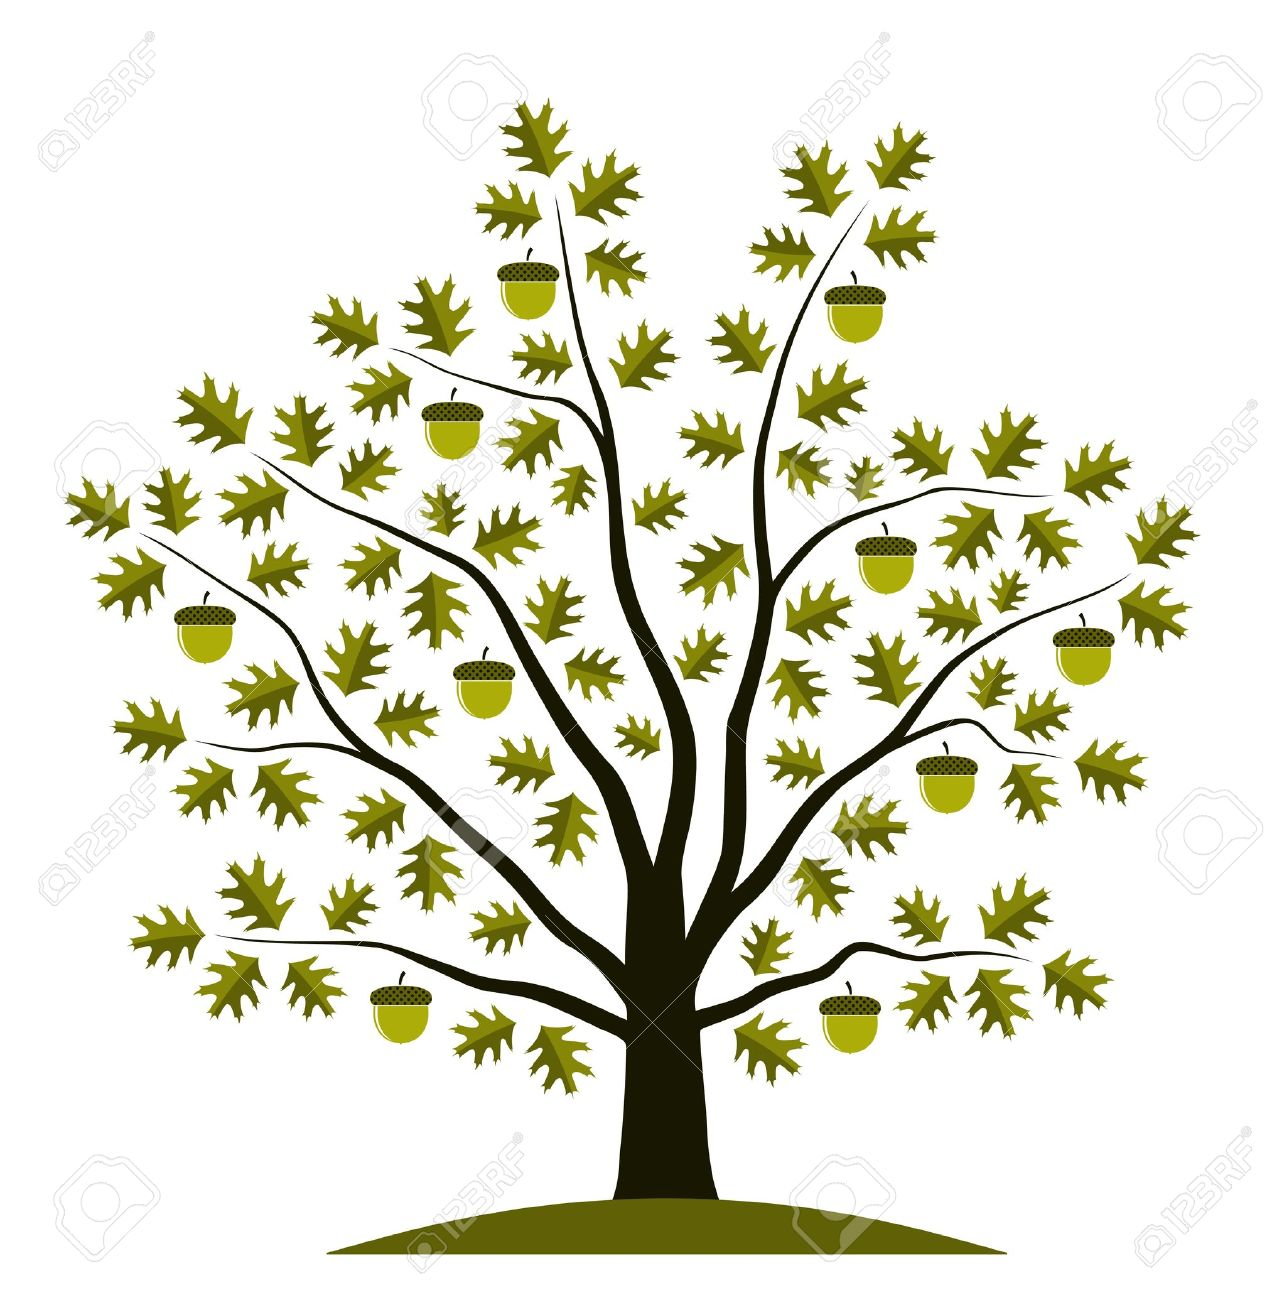 Oak tree with acorns clipart.